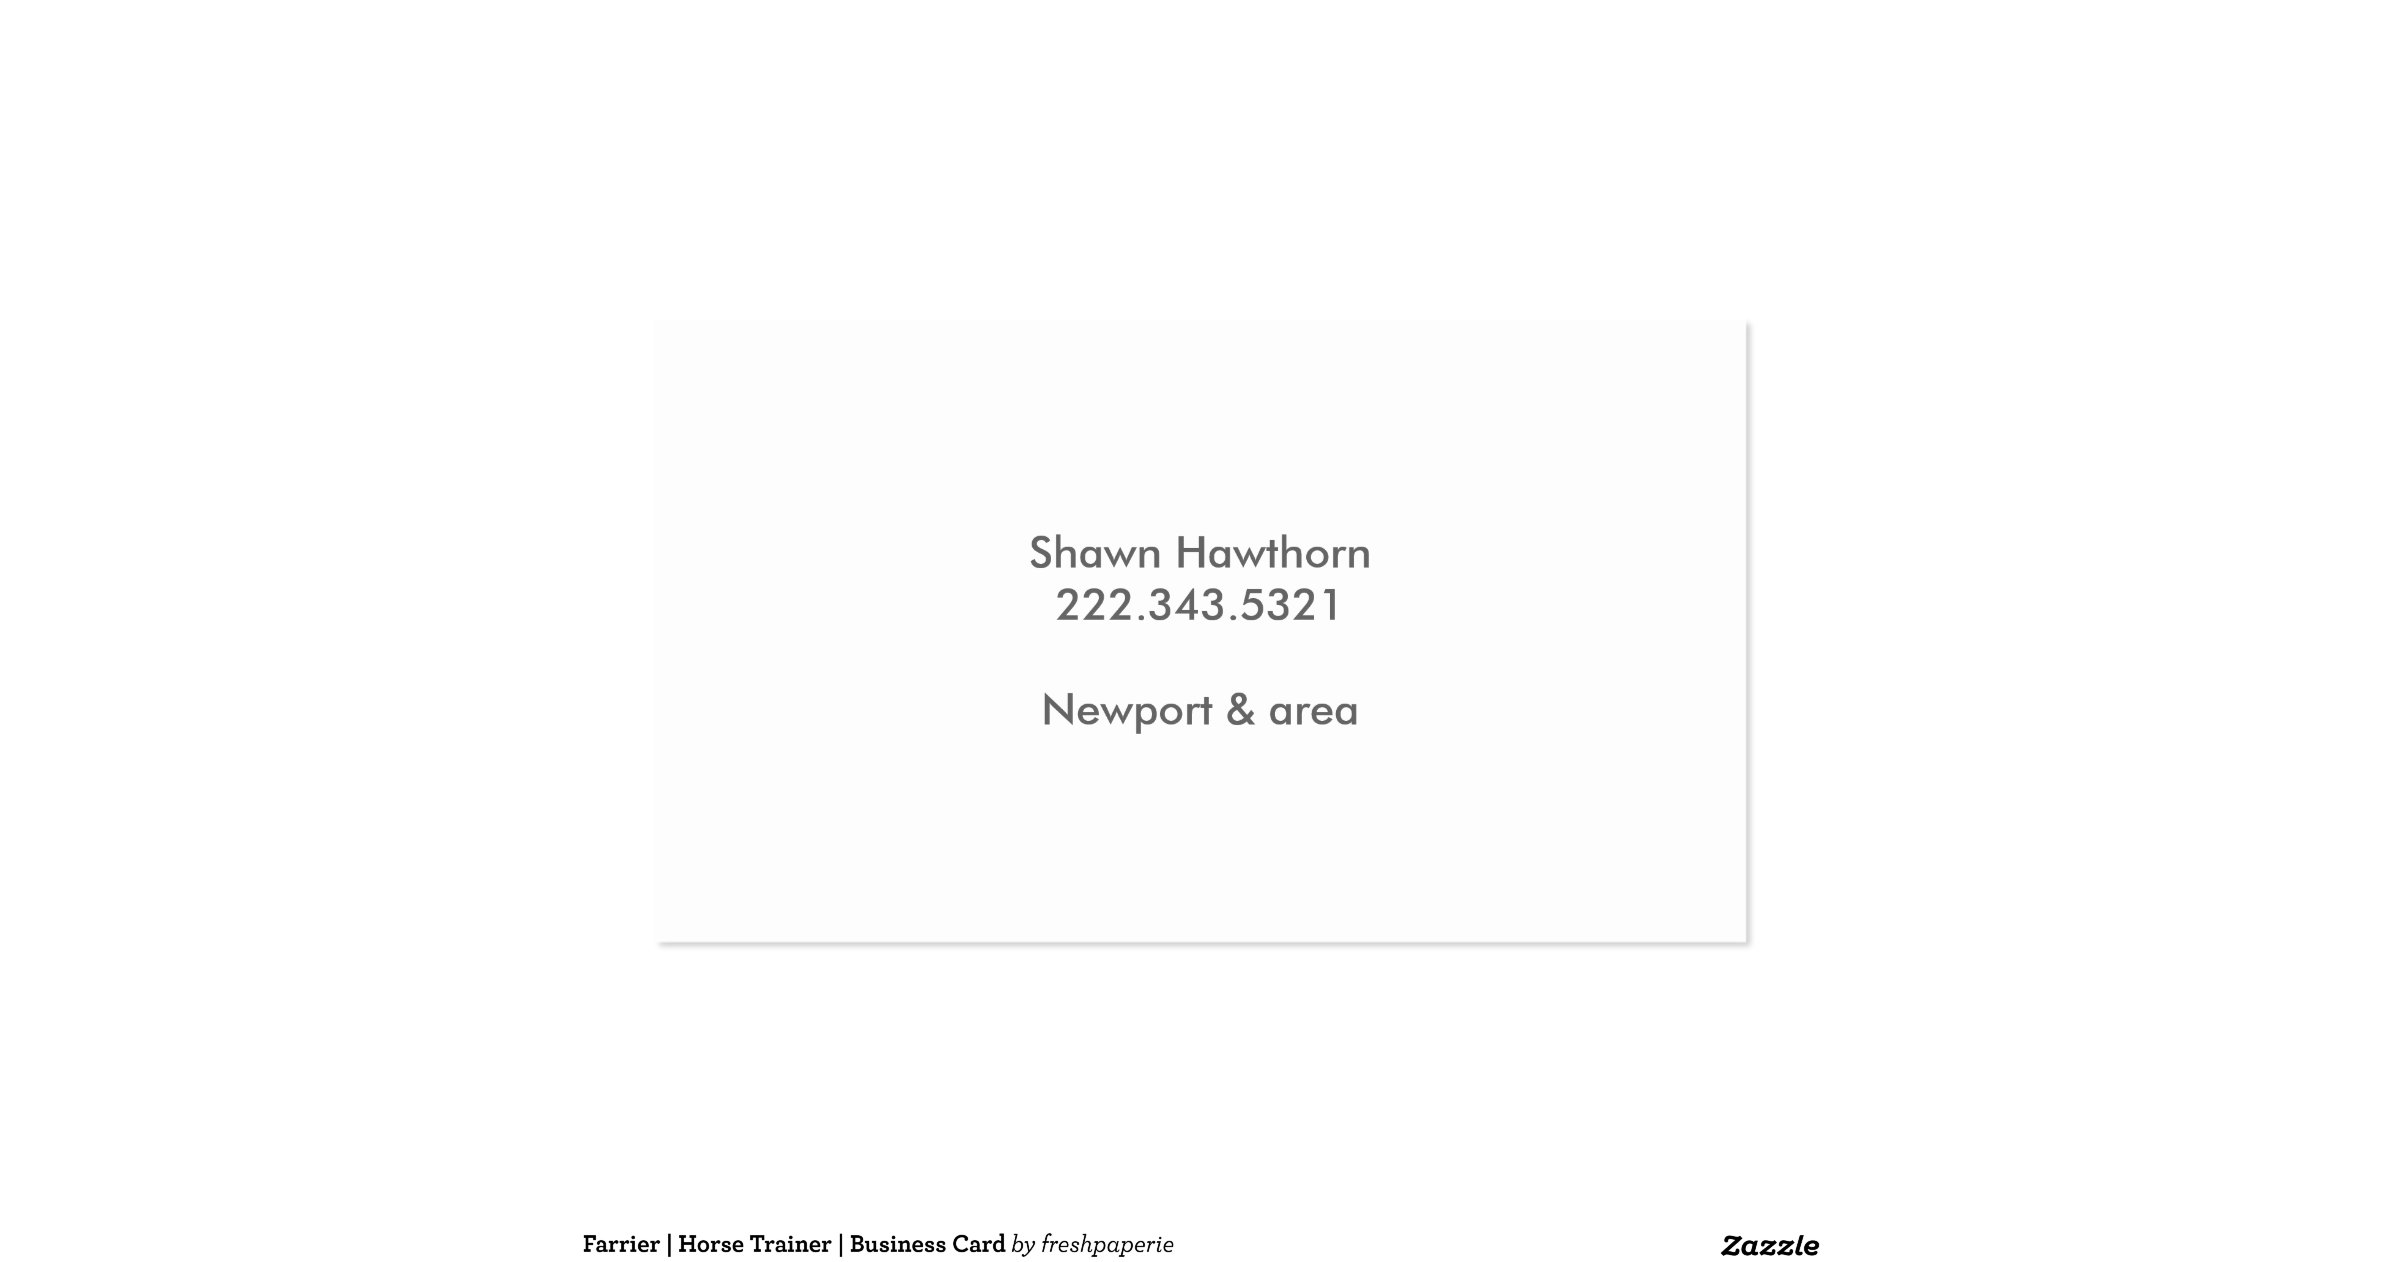 Farrier horse trainer business card zazzle for Horse trainer business cards